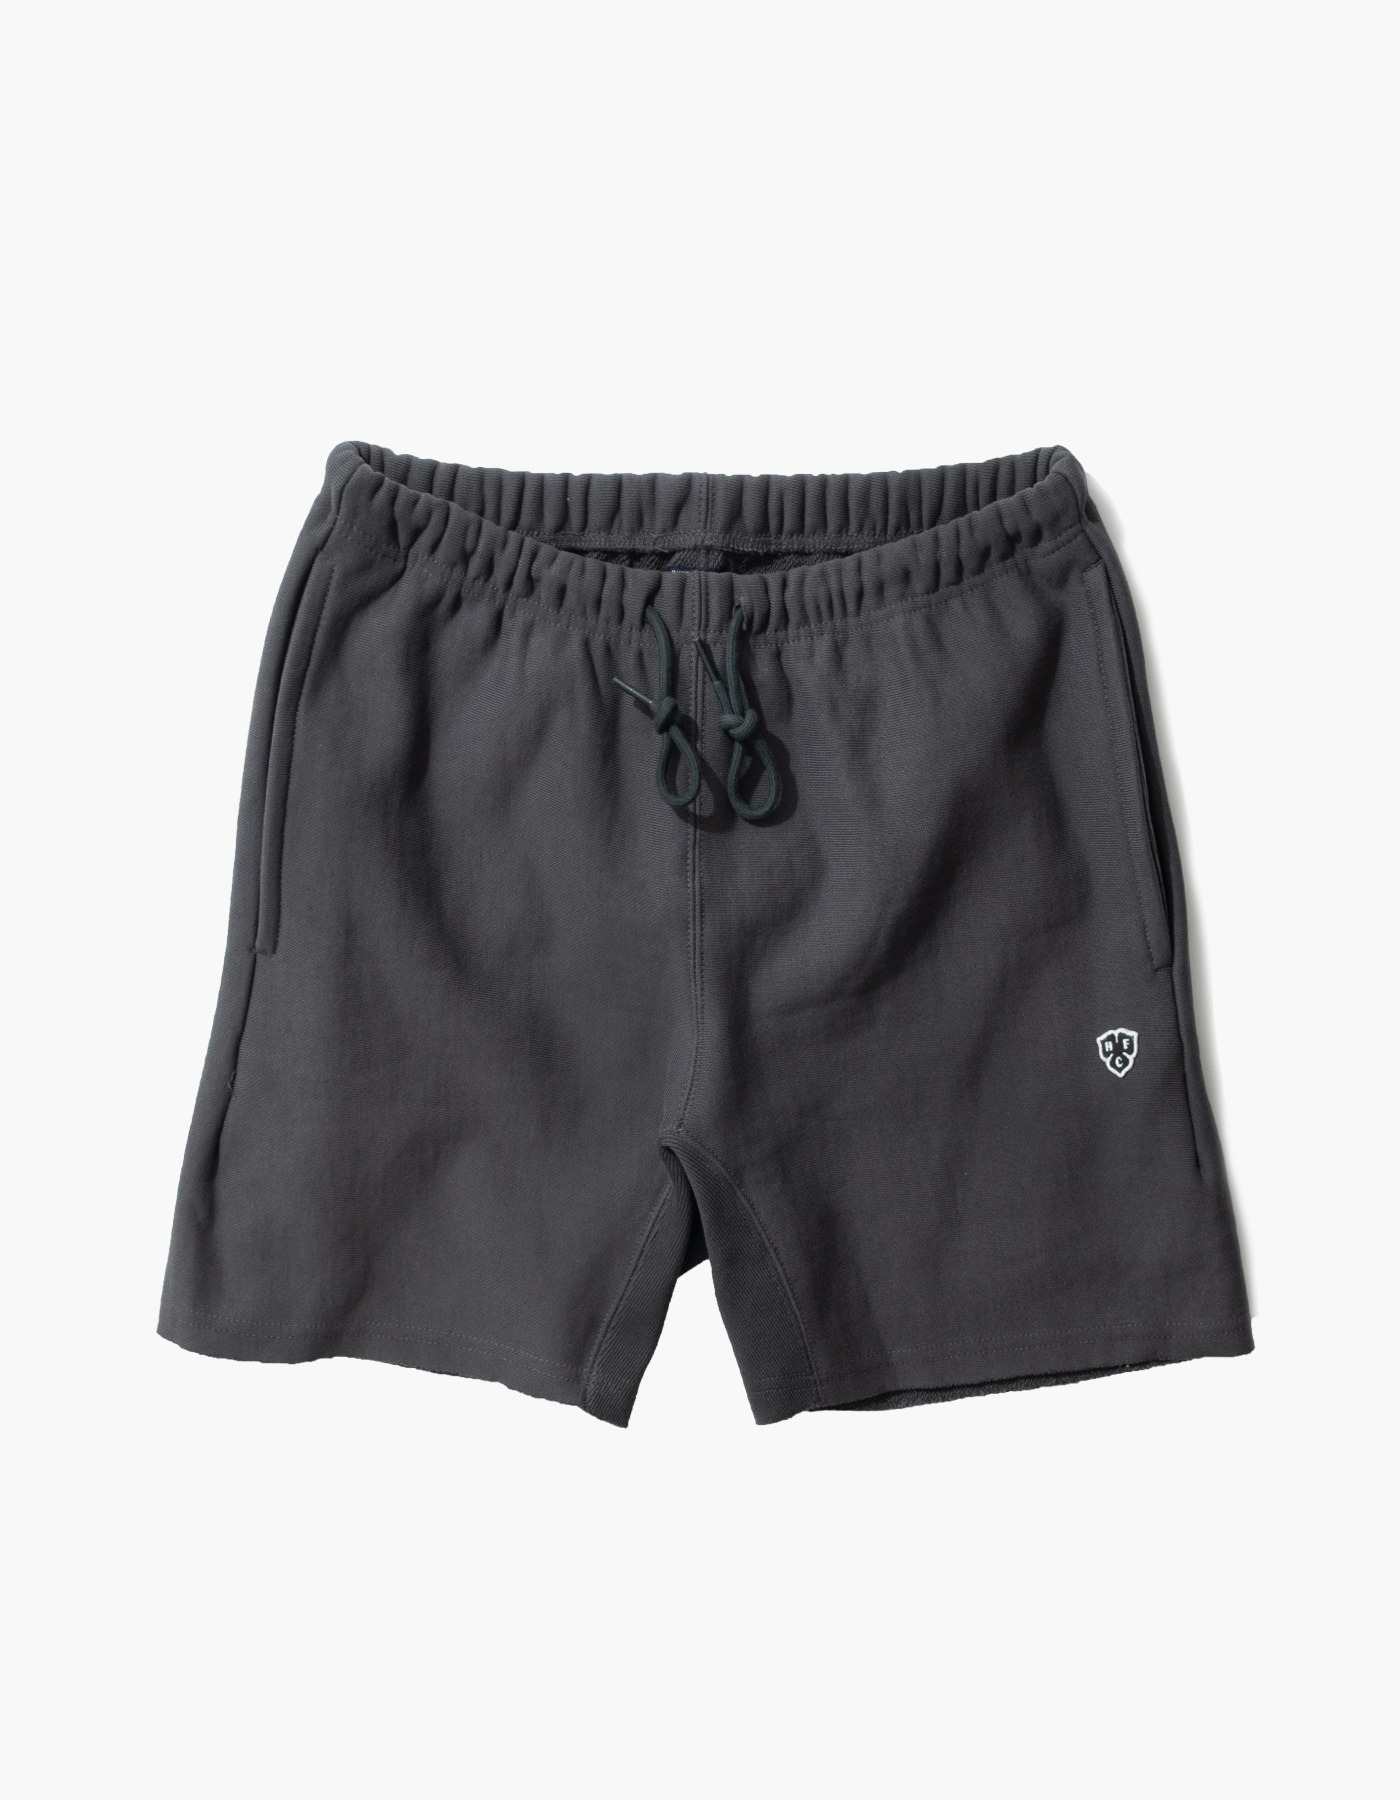 321 GYM SHORTS / CHARCOAL